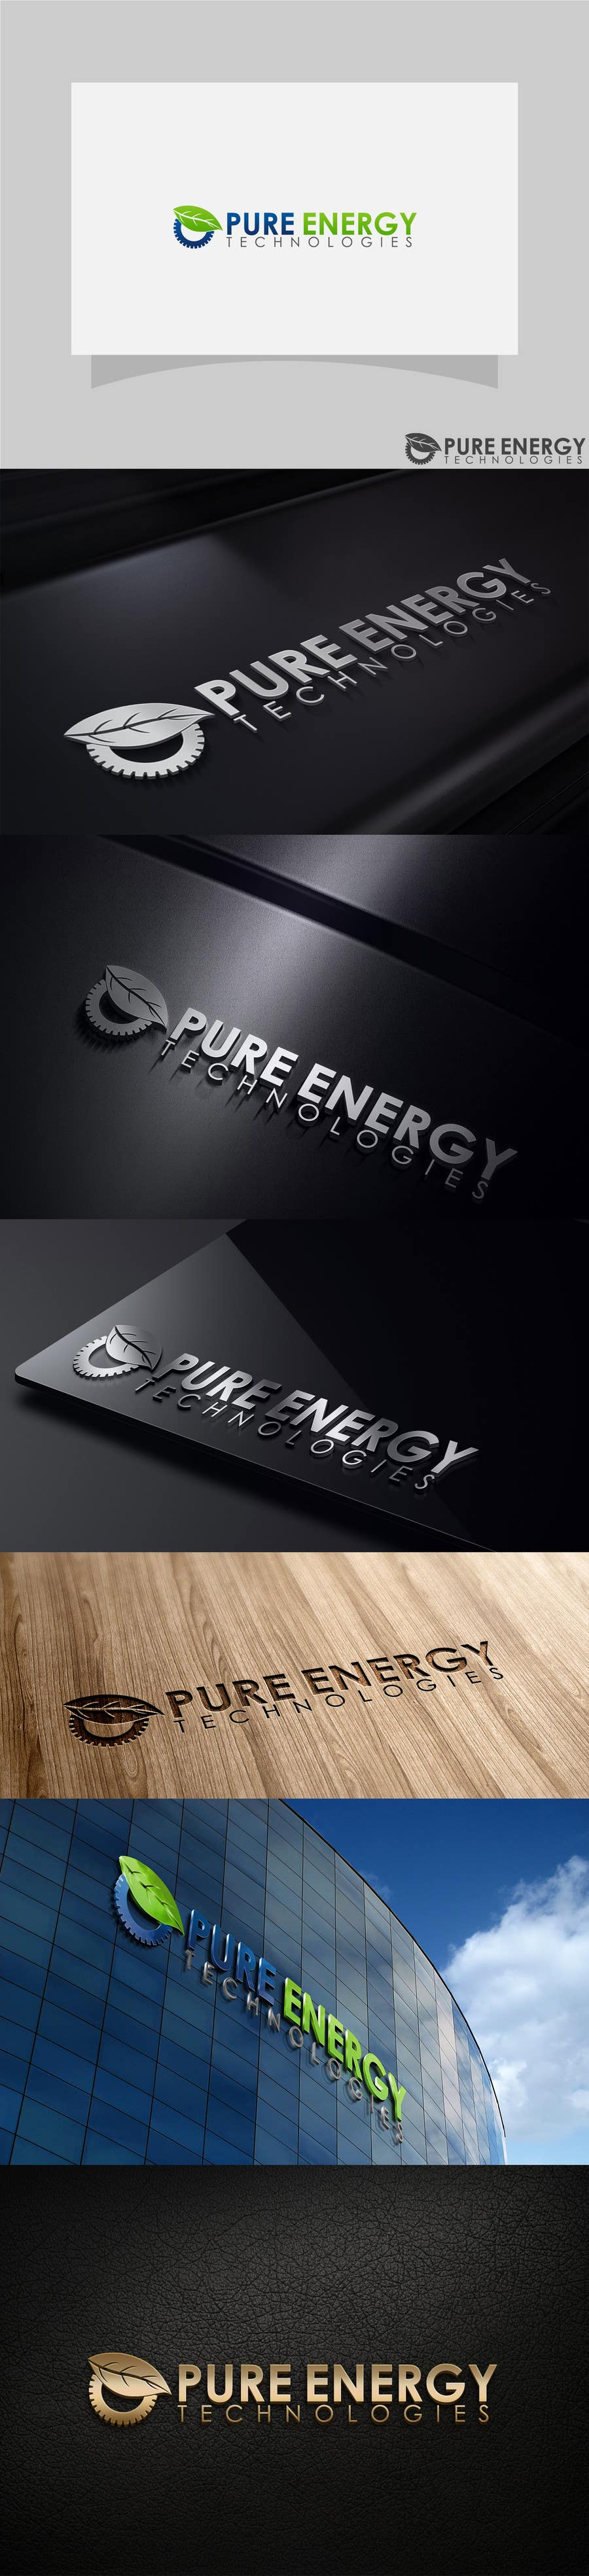 #53 for Design a Logo for a Clean Energy Business by csdesign78